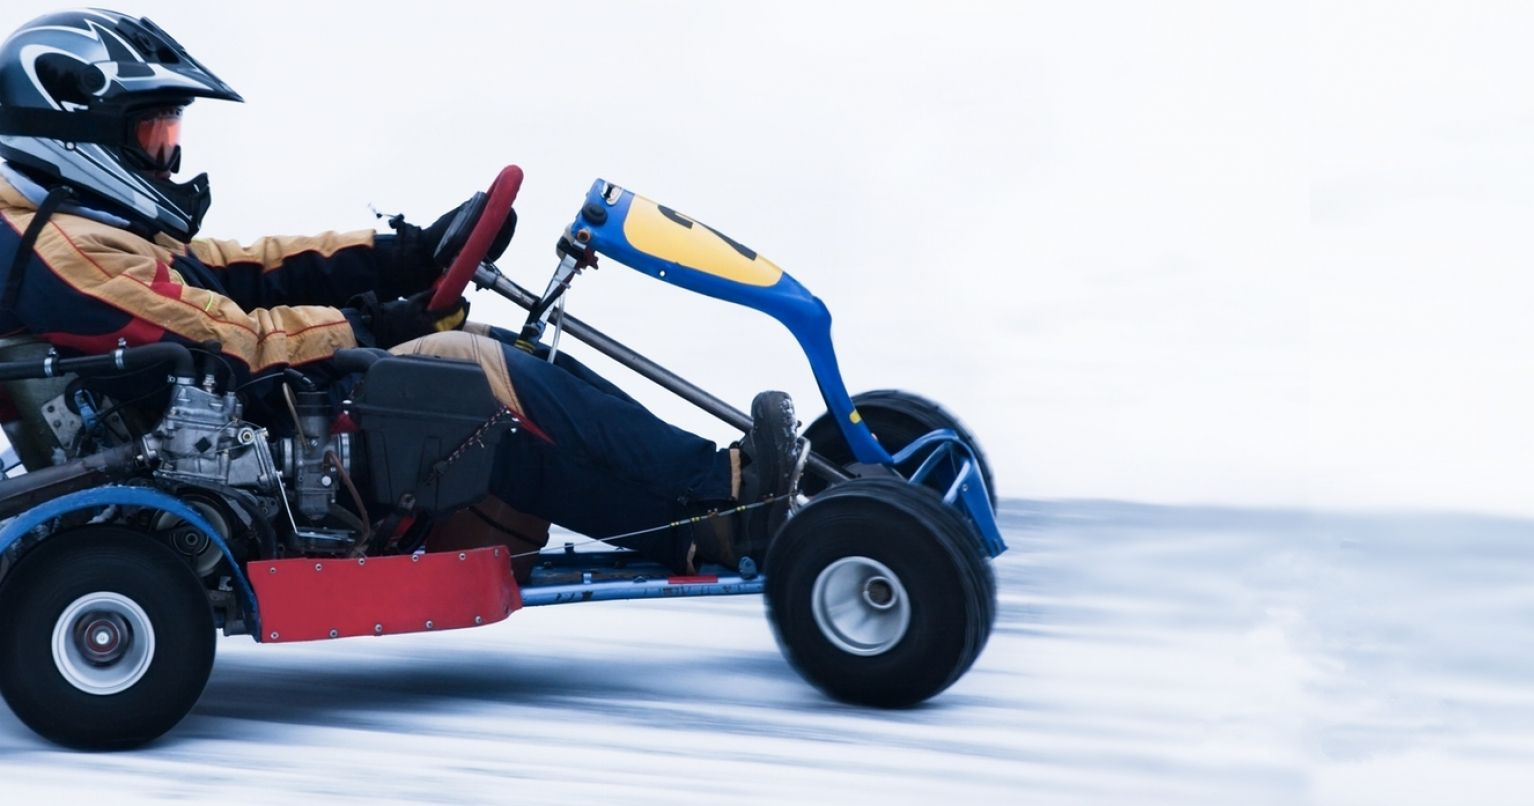 Go Kart Racing on Ice in Finland Tinggly Experience Gift